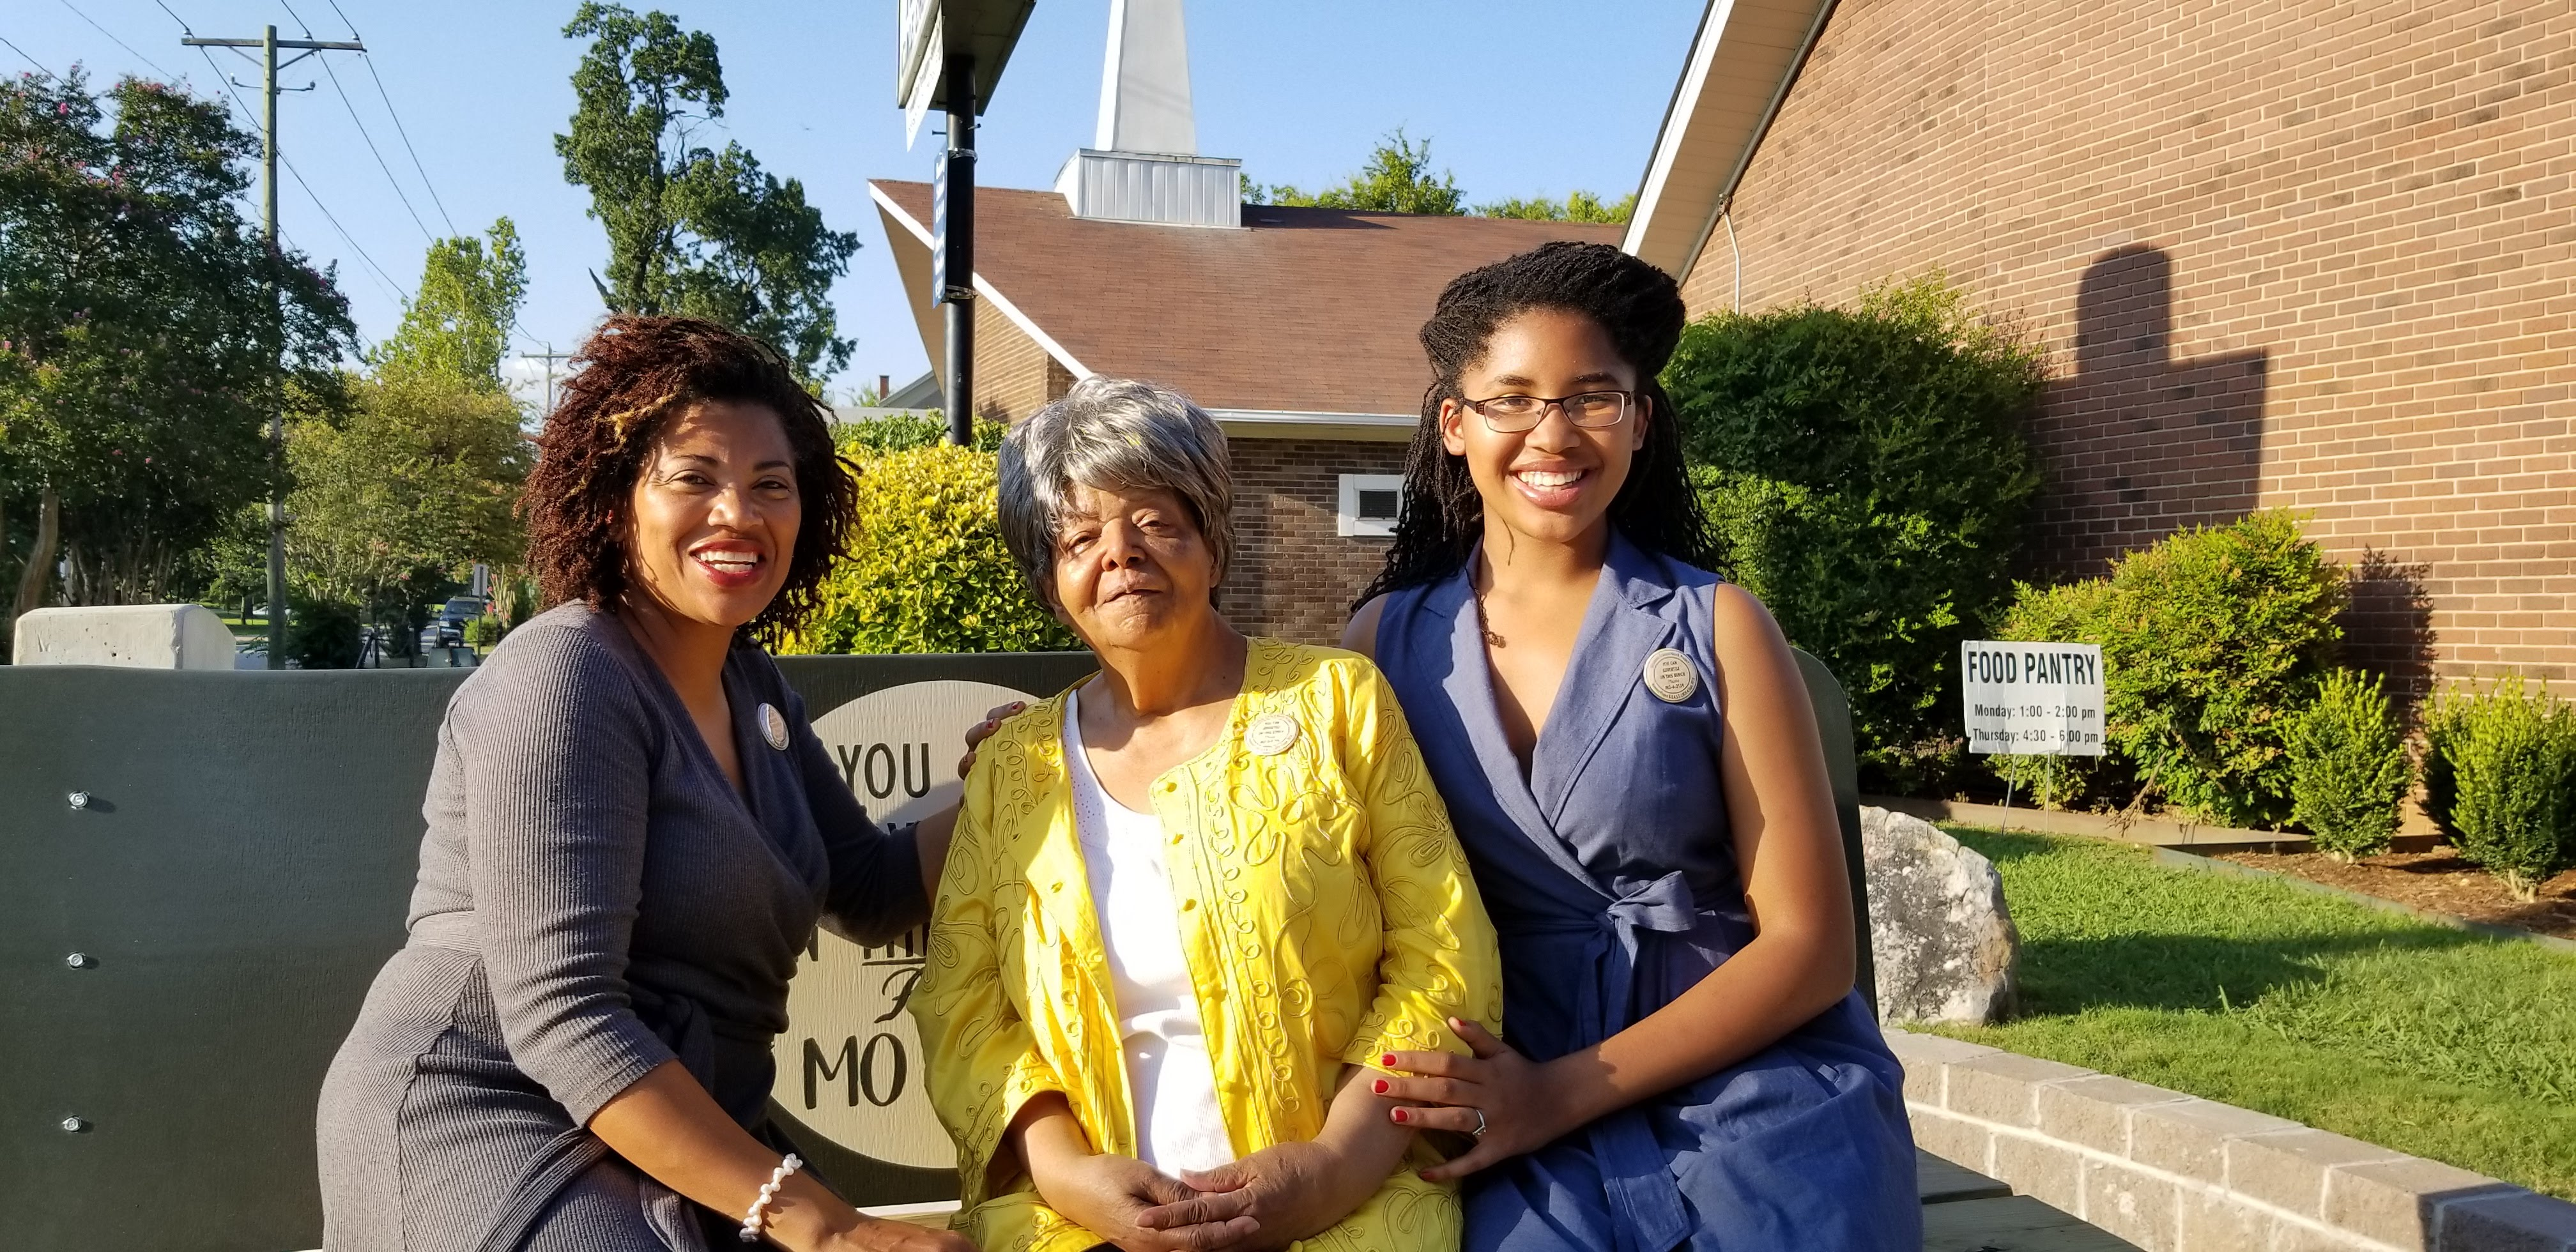 Elizabeth Eckford, Eurydice Stanley, and Grace Stanley sitting on commemorative bench